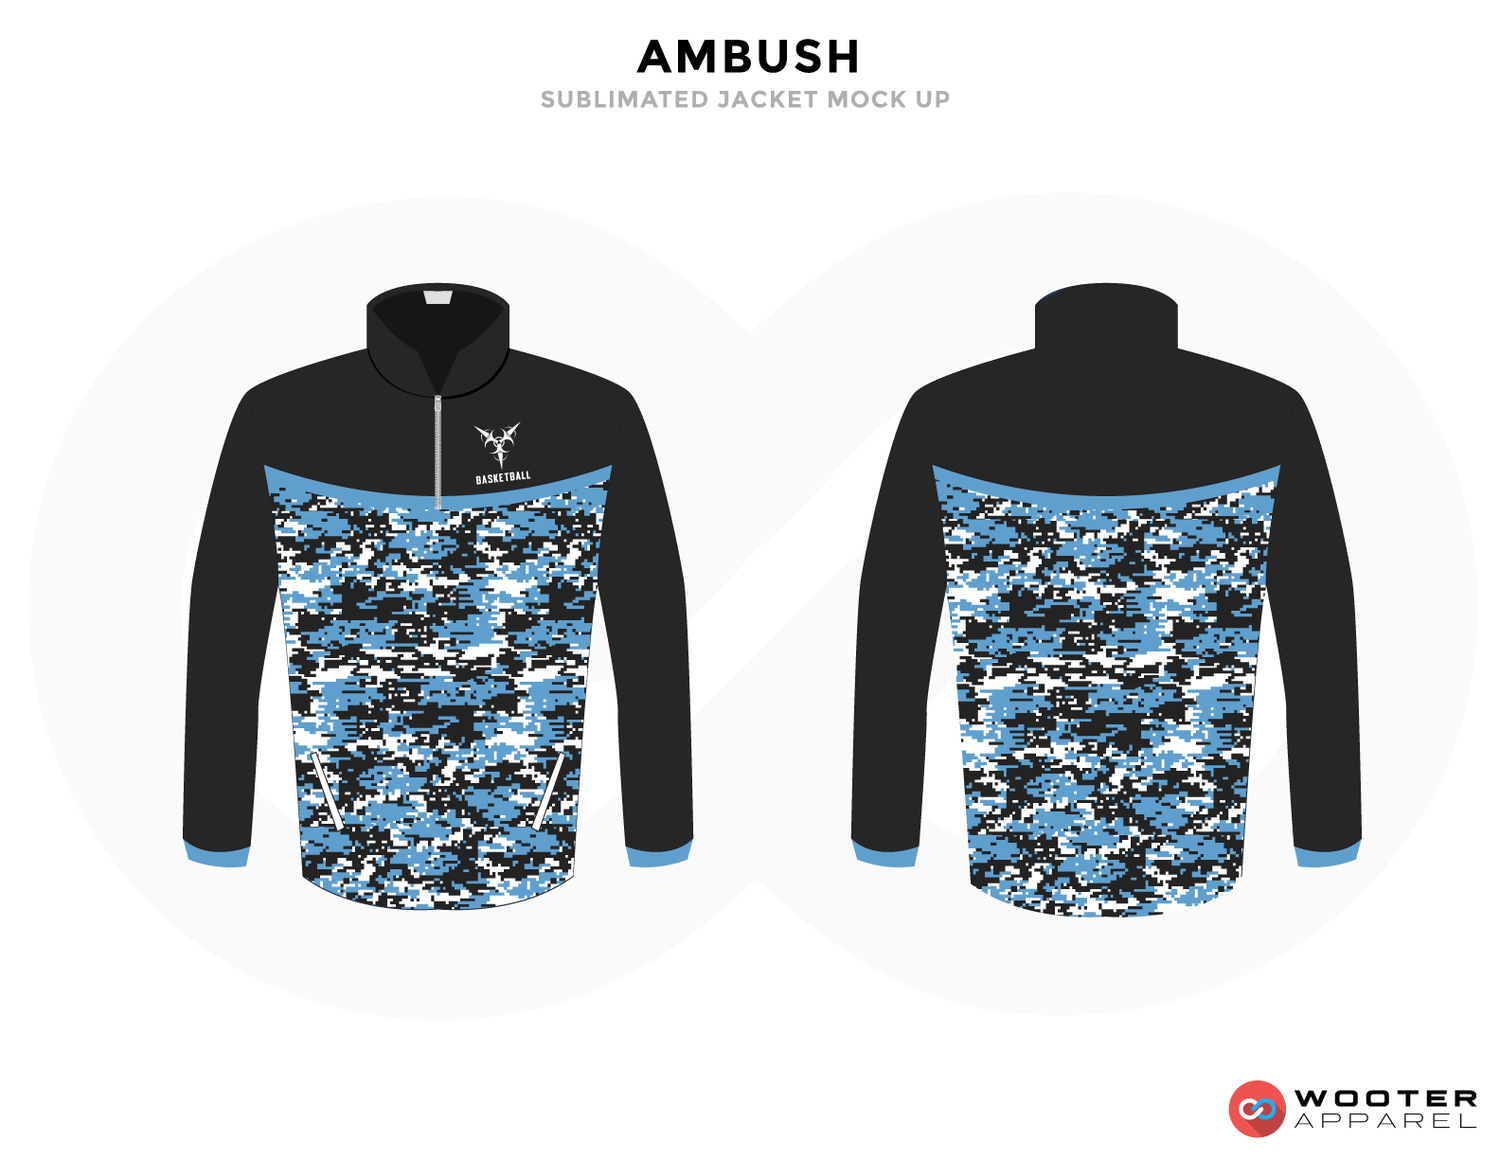 AMBUSH Black White and Blue Baseball Uniforms, Jackets